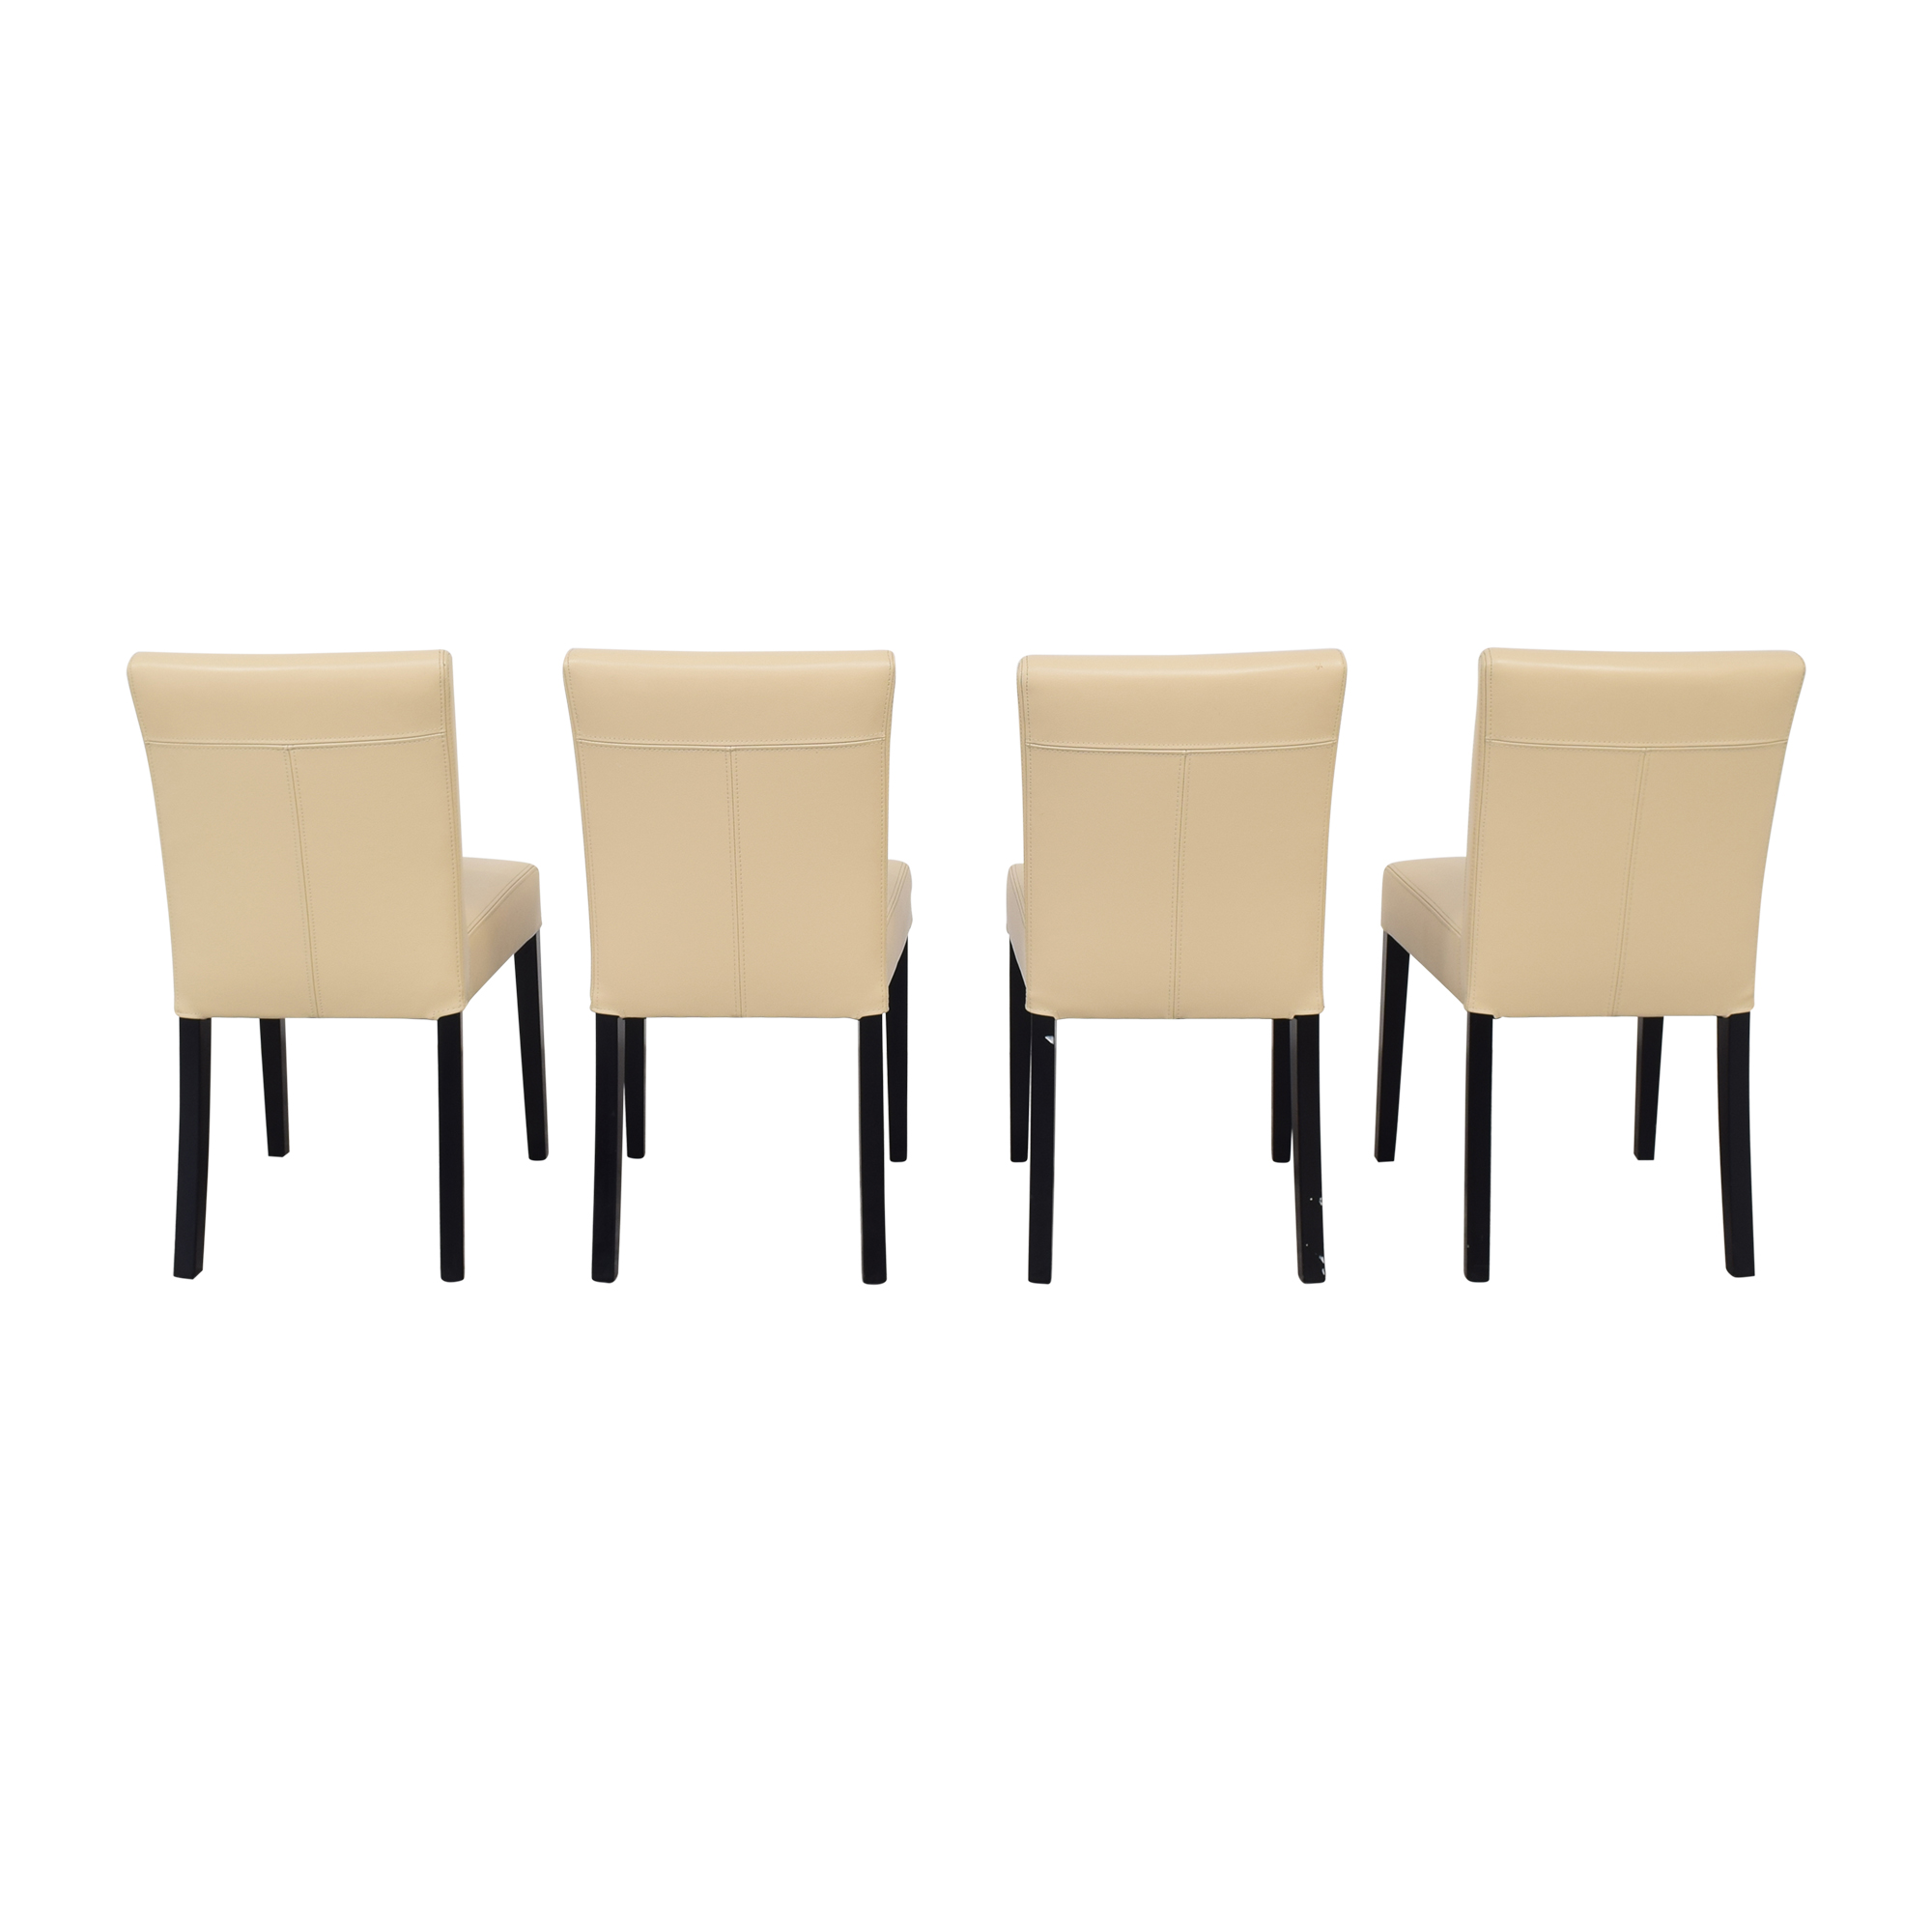 Crate & Barrel Lowe Ivory Dining Chairs sale